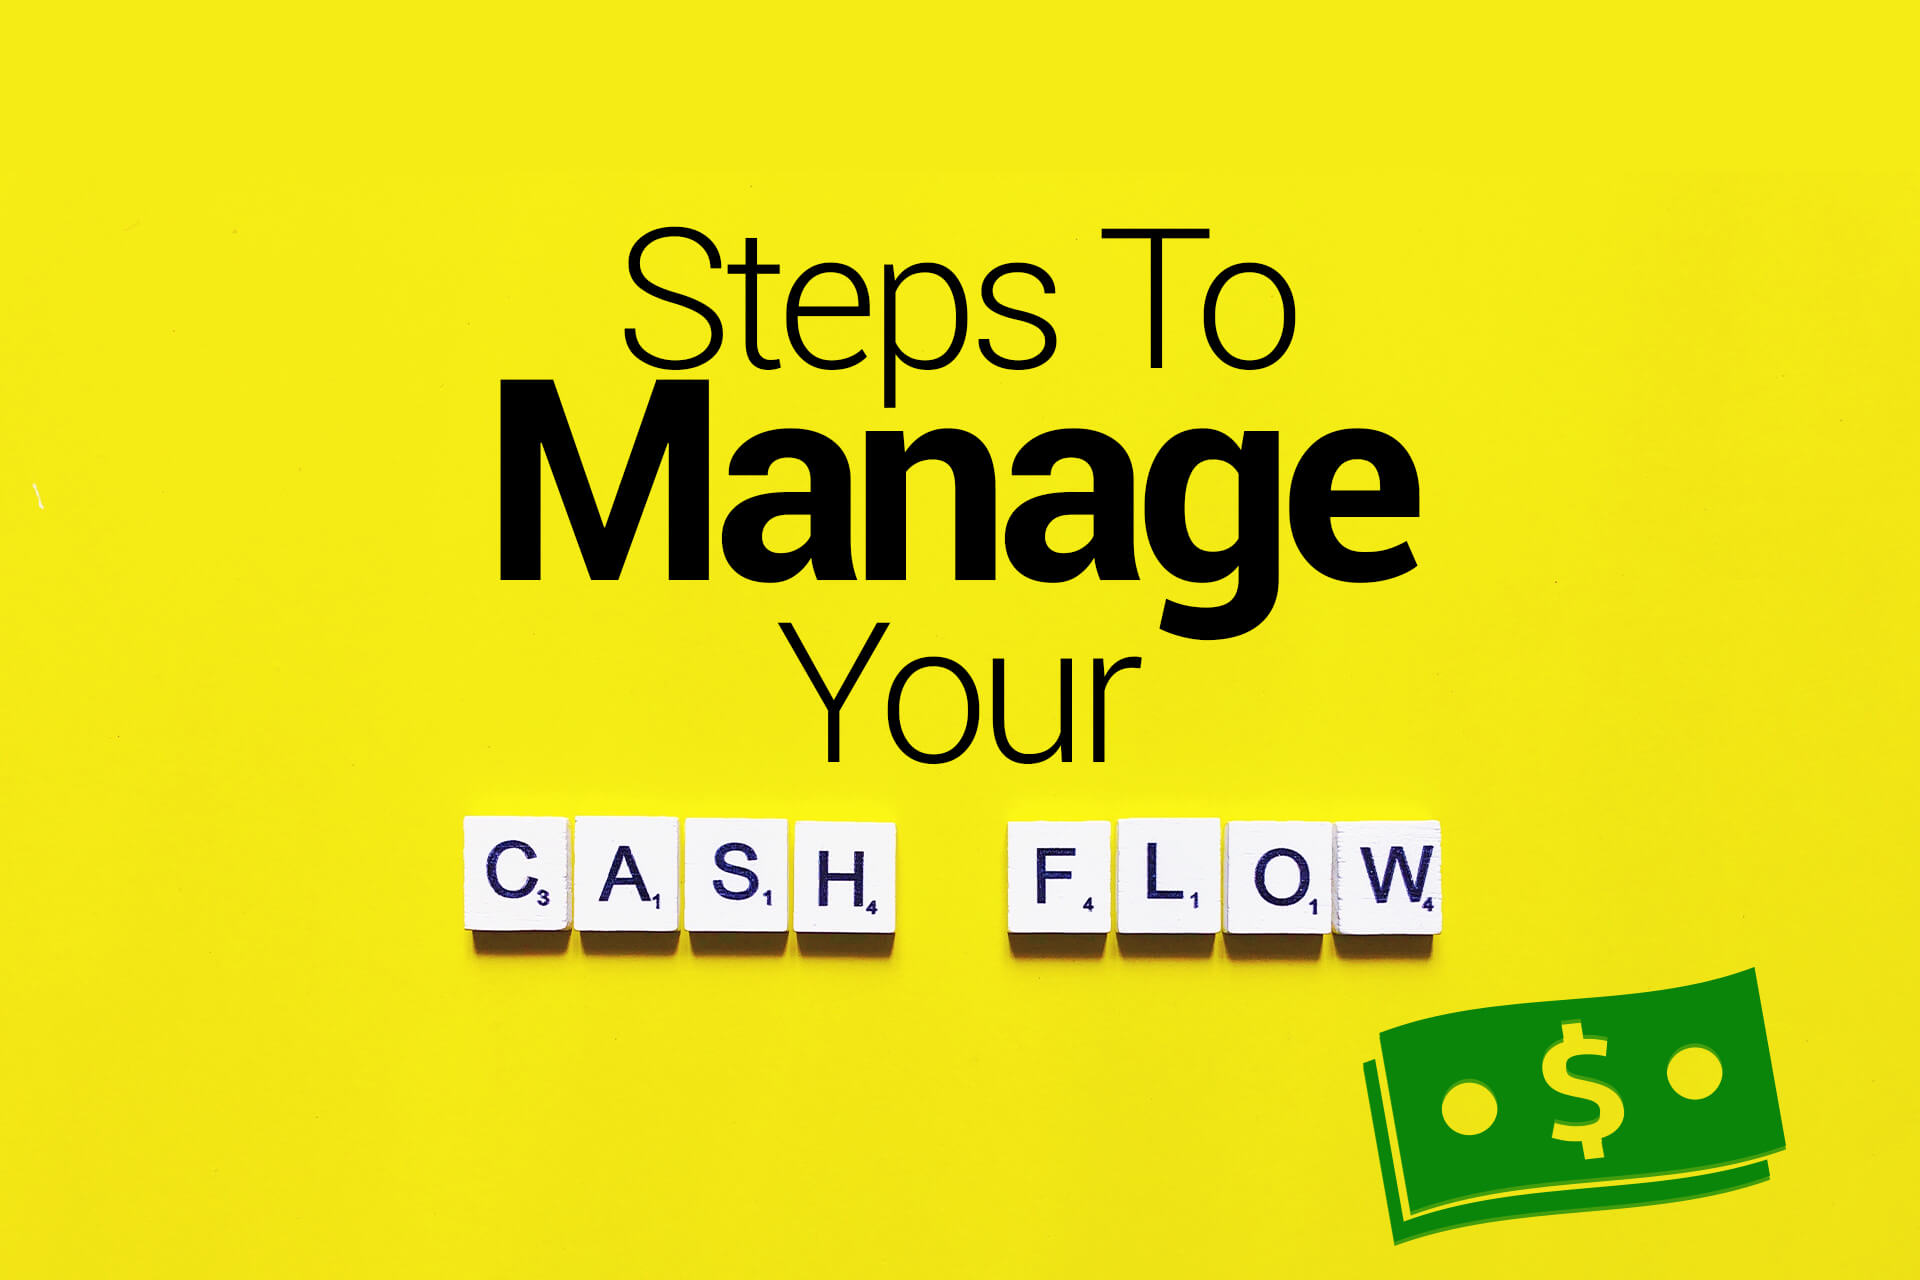 Steps To Manage Your Cash Flow